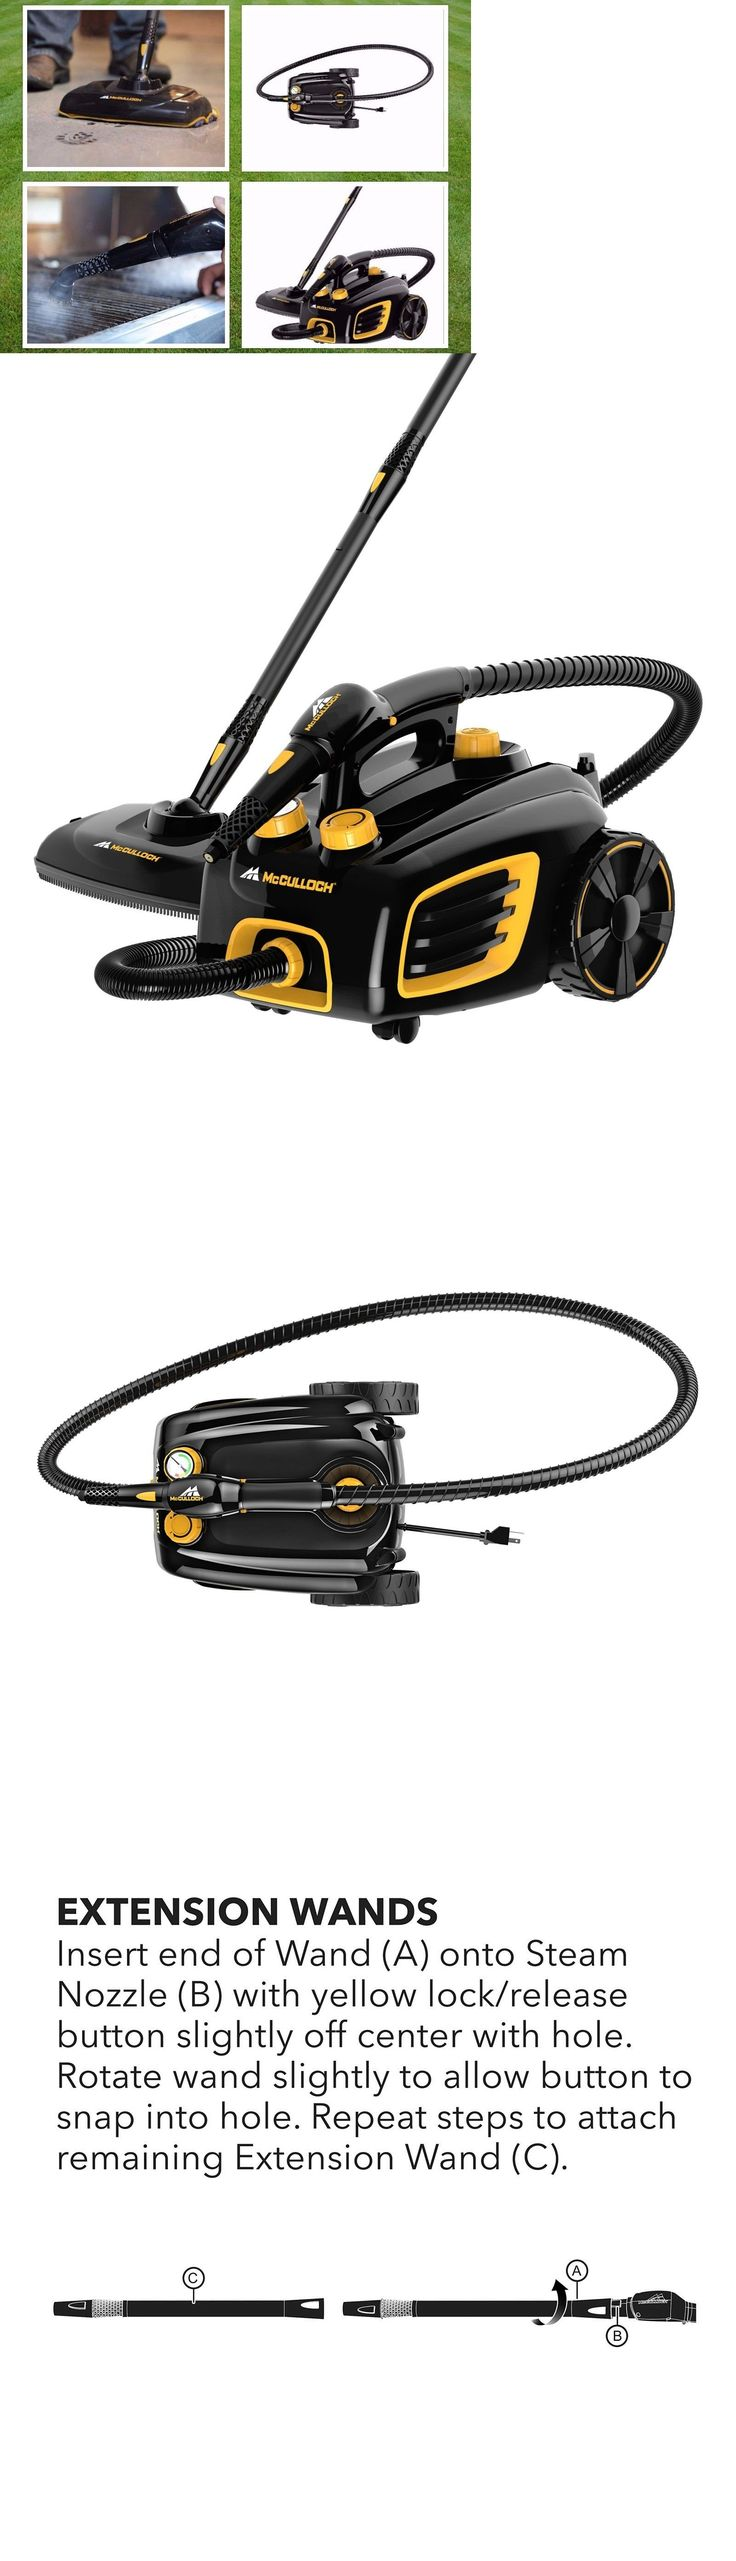 Carpet Steamers 79656: Mcculloch Mc1375 Deluxe Canister Steam System Powerful Carpet Cleaner Vacuum Mop -> BUY IT NOW ONLY: $224.52 on eBay!